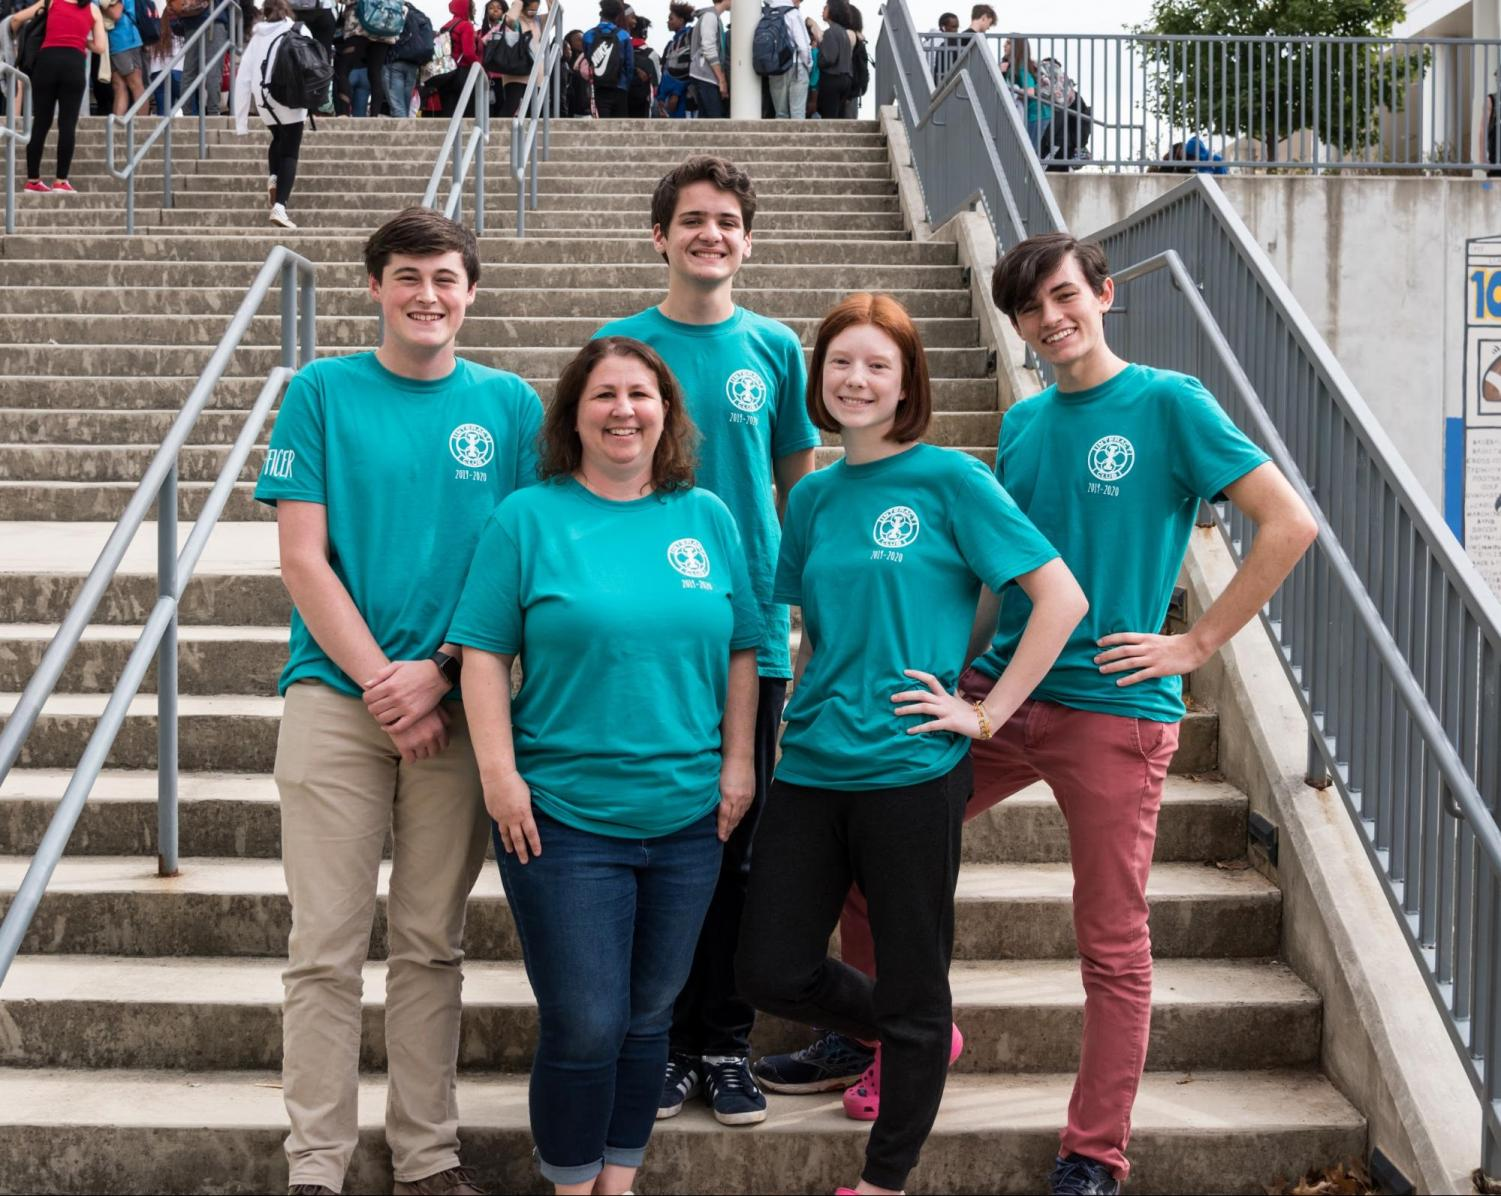 Pursuing a leadership role in your junior year, such as these Interact officers, is a sure way to improve your junior experience.